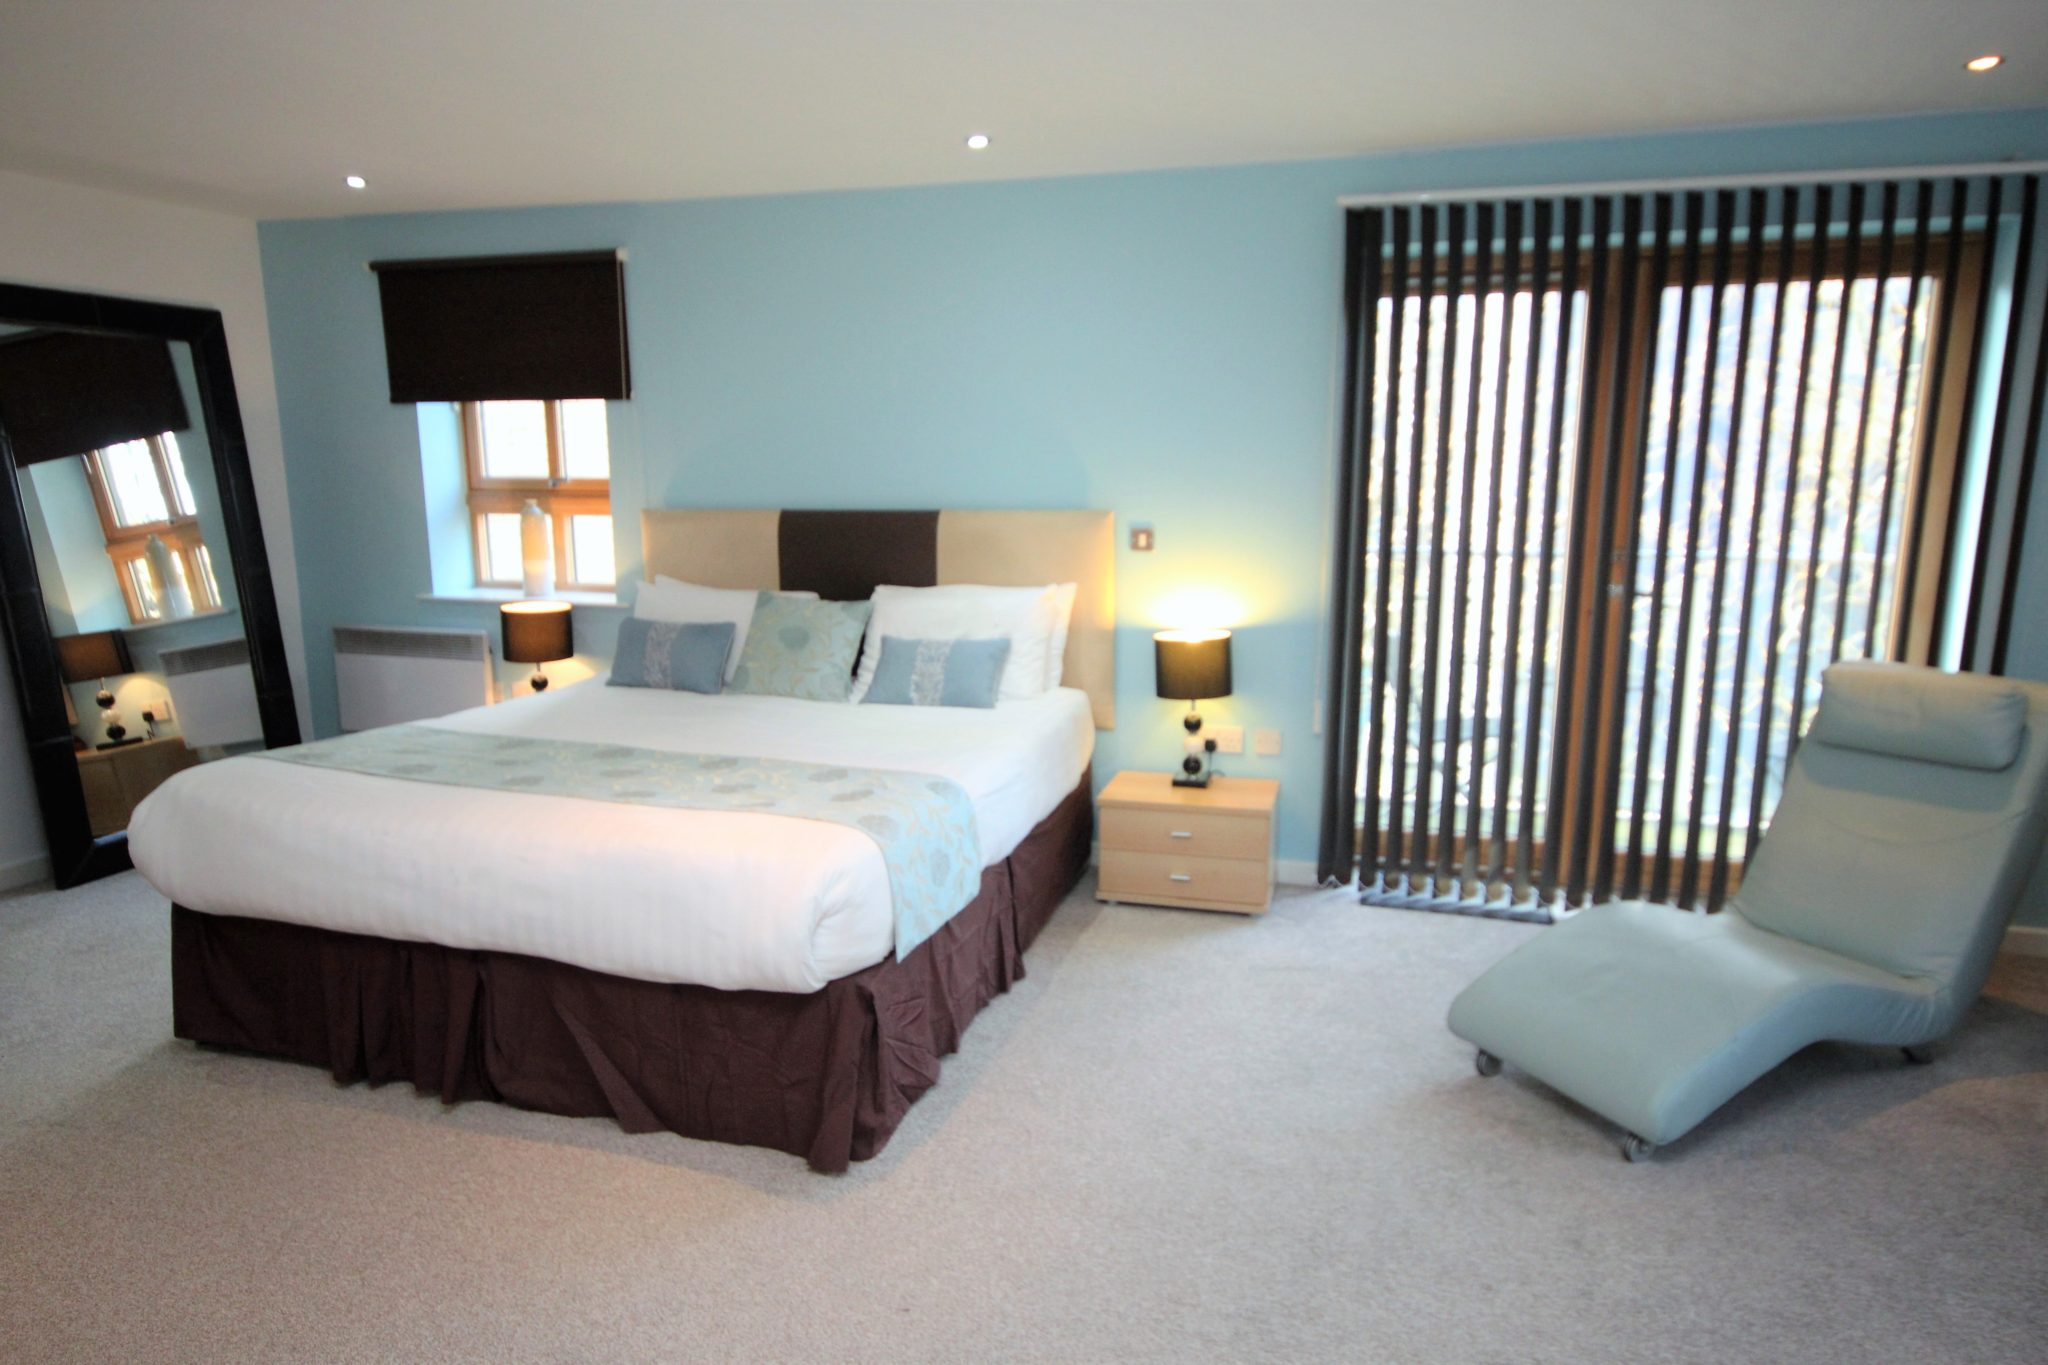 Book-NewcastleShort-Lets-in-the-City-Centre-Now!-Our-Corporate-Serviced-Apartments-have-free-Wifi,-Cleaning,-Lift,-Parking-&-are-Wheelchair-Accessible!-Urban-Stay